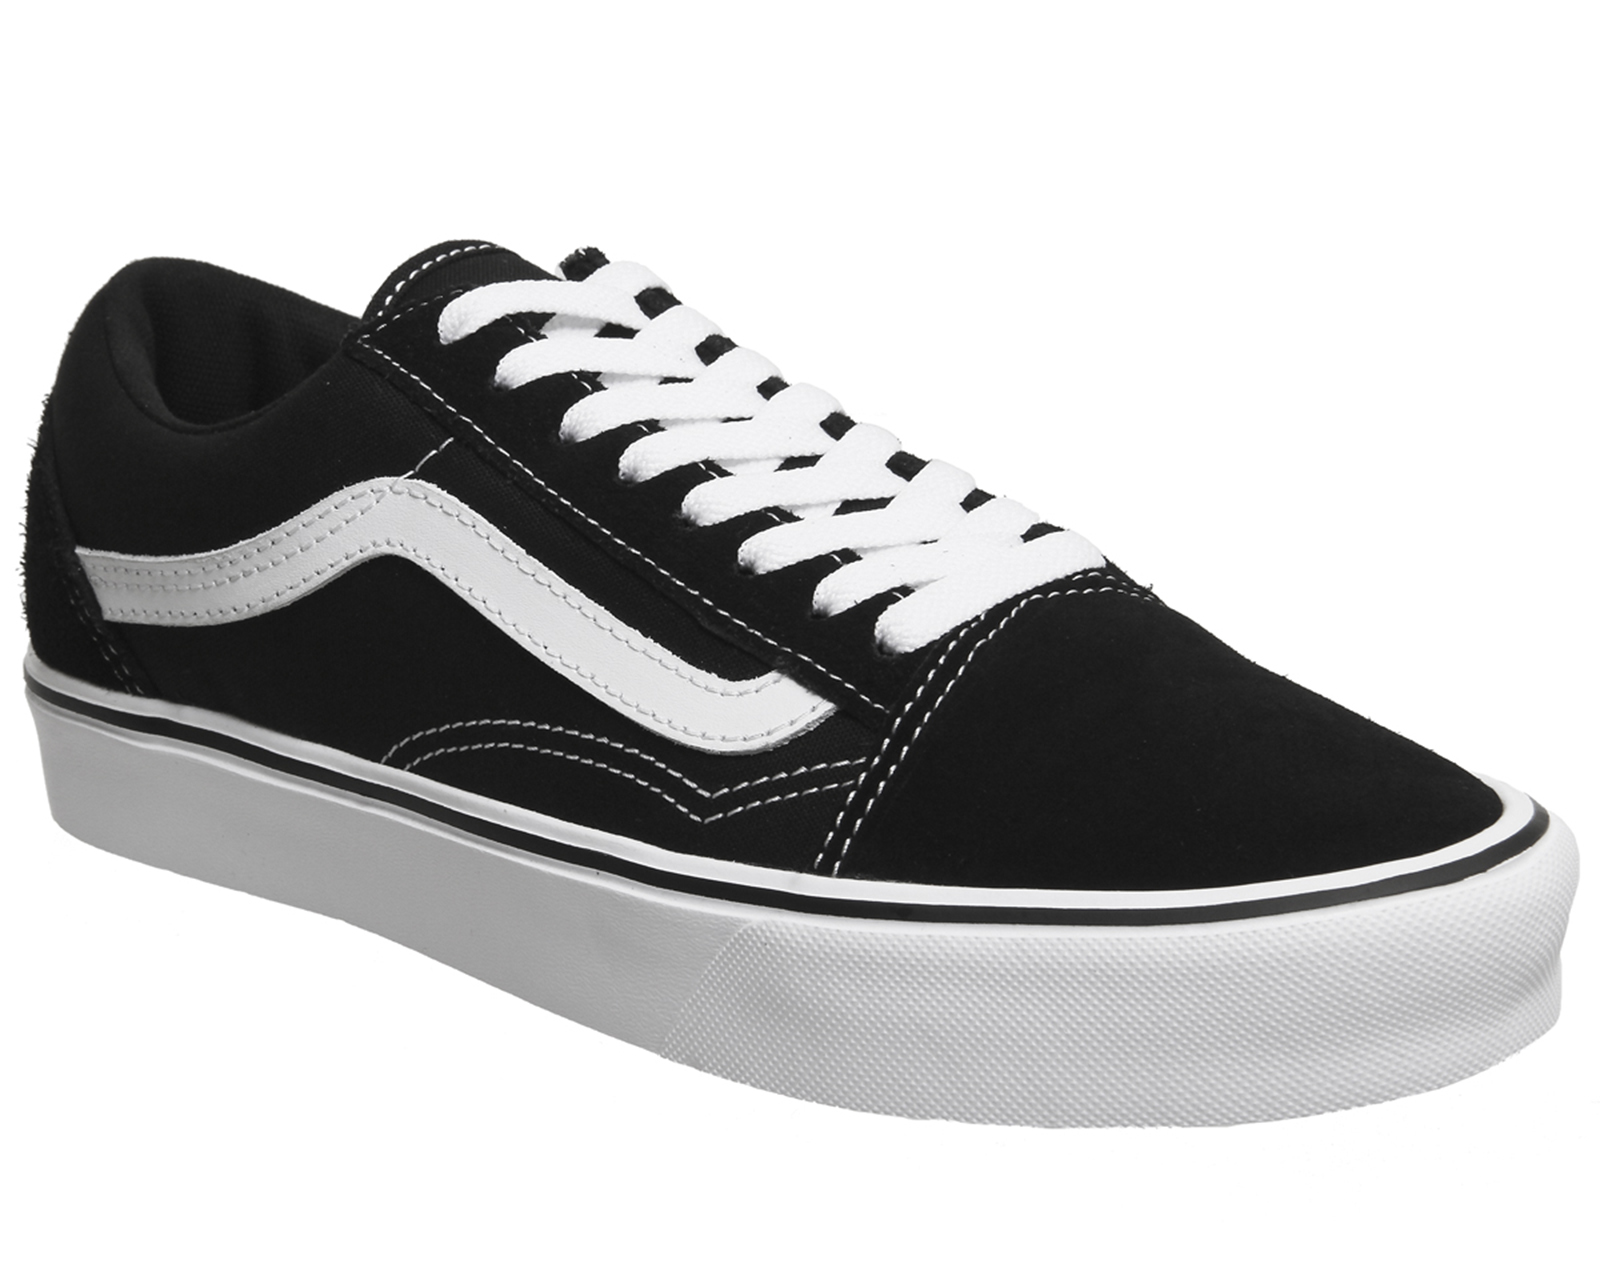 Vans Old Skool Zapatillas Negro tMsoX